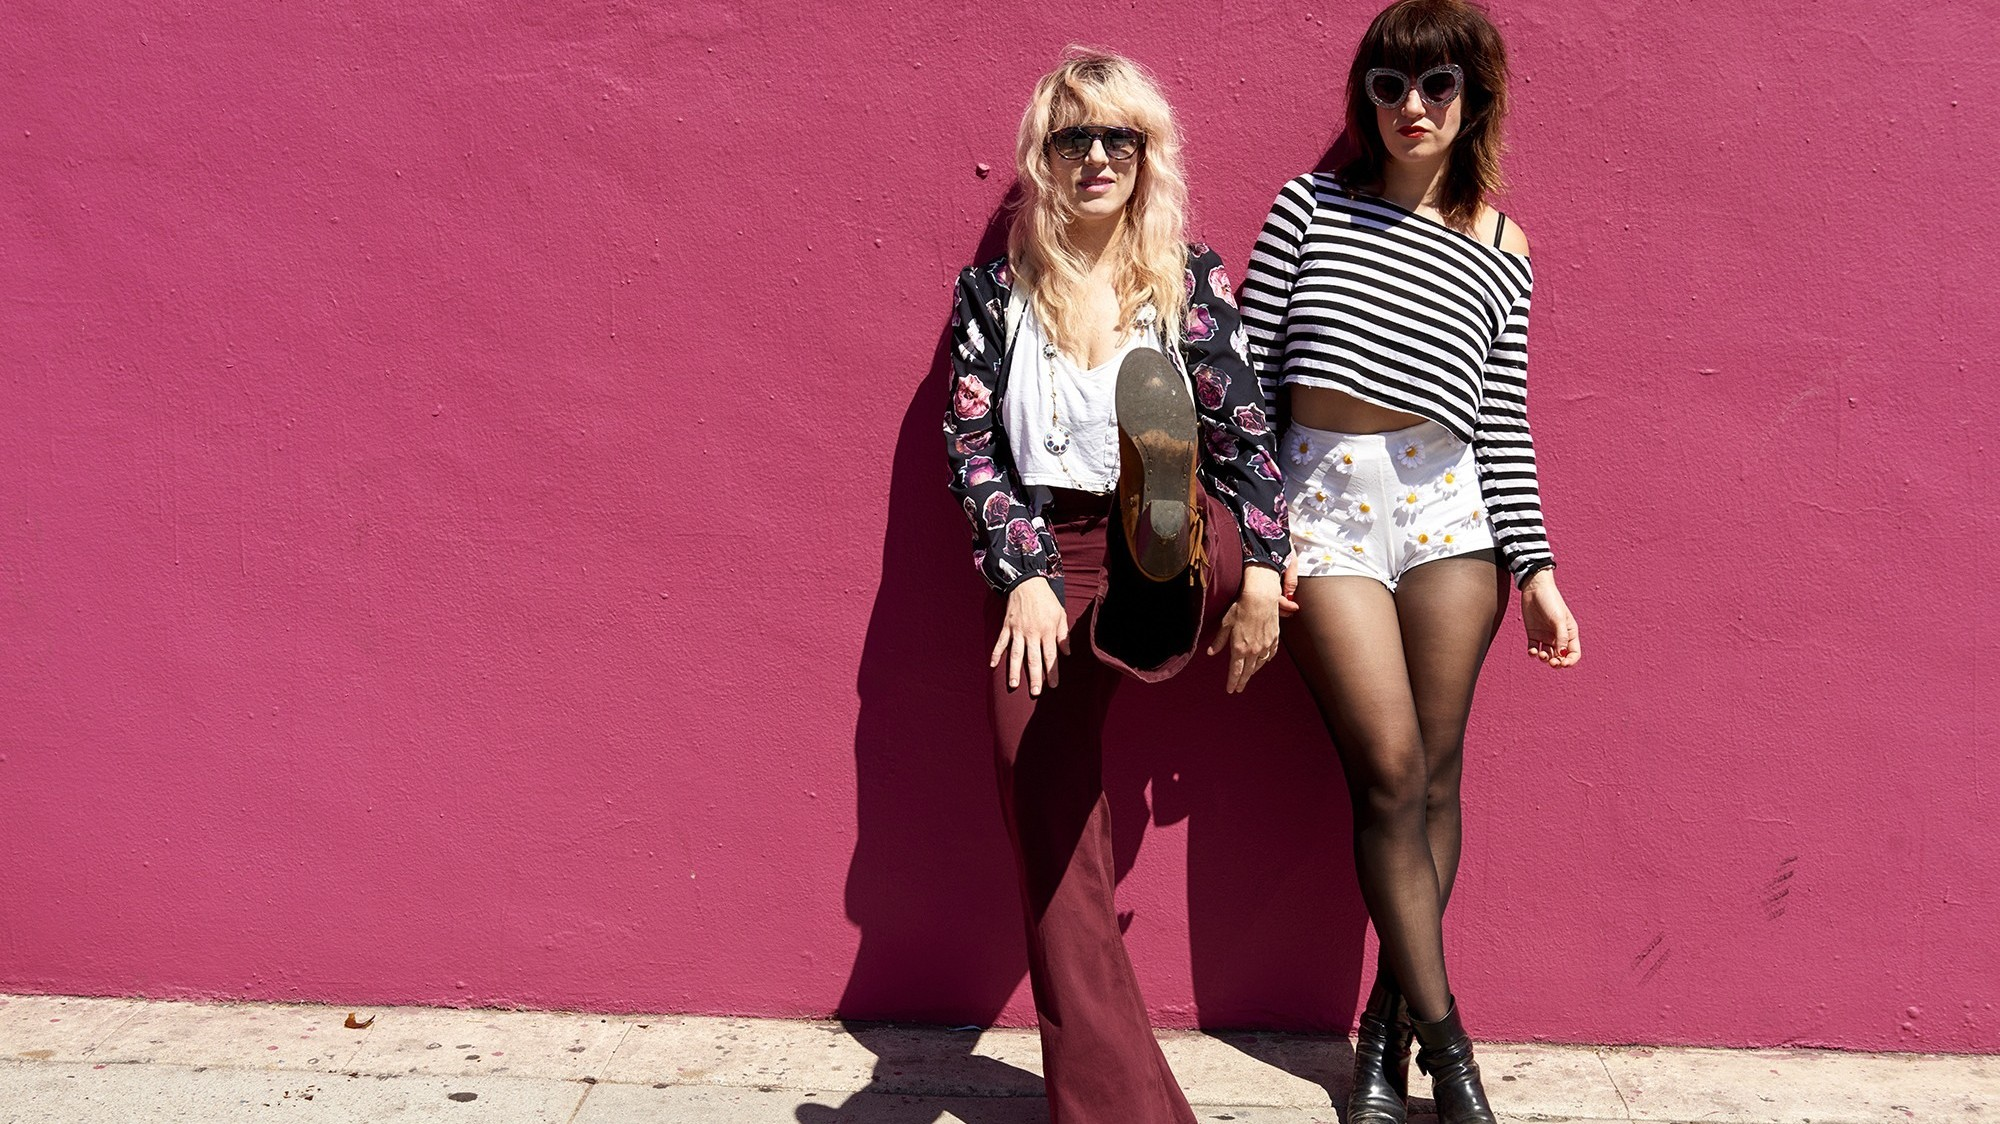 deap vally: rocking shoeless to subvert the patriarchy